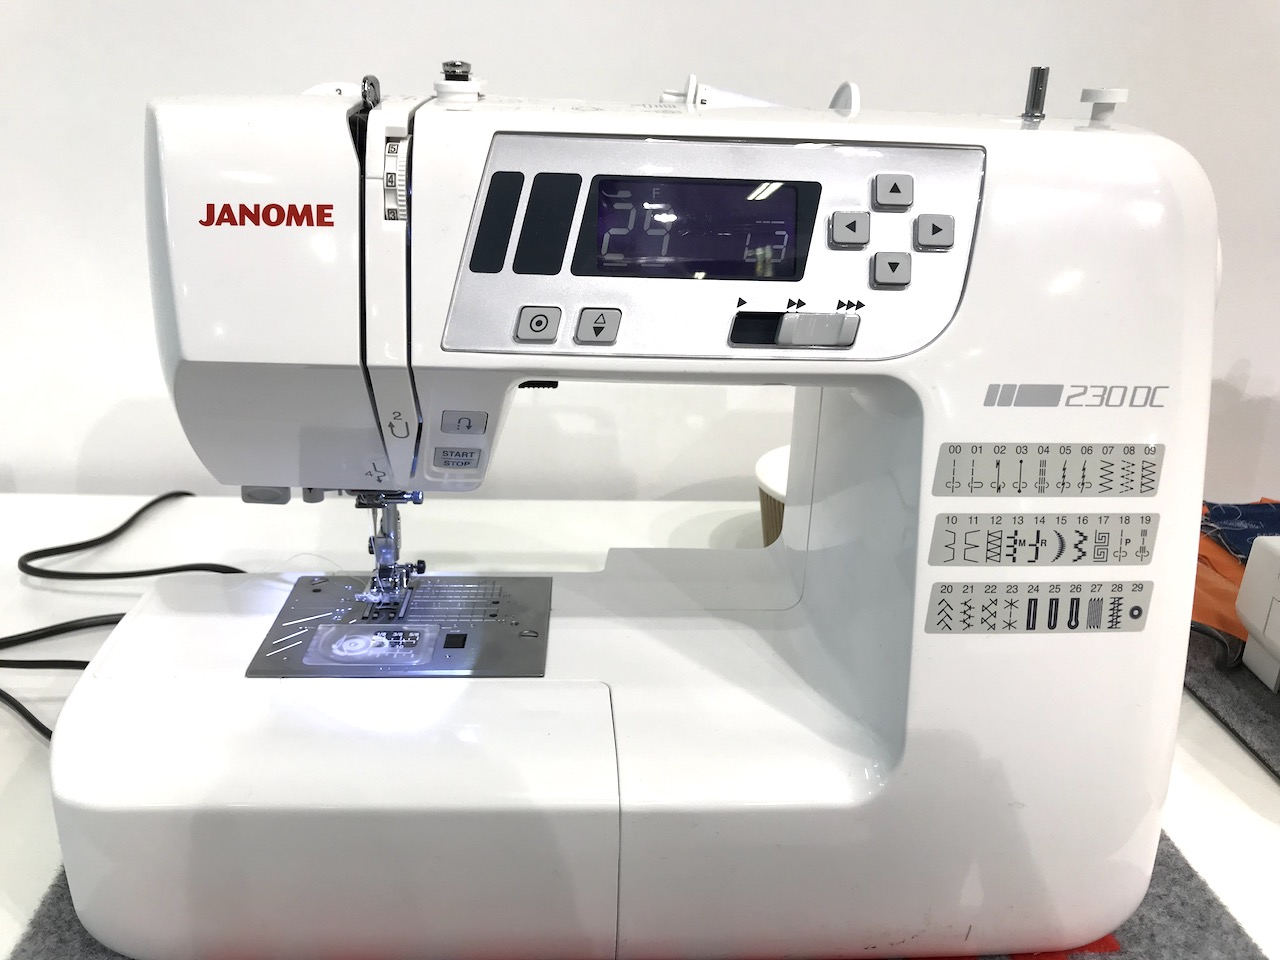 Janome DC230